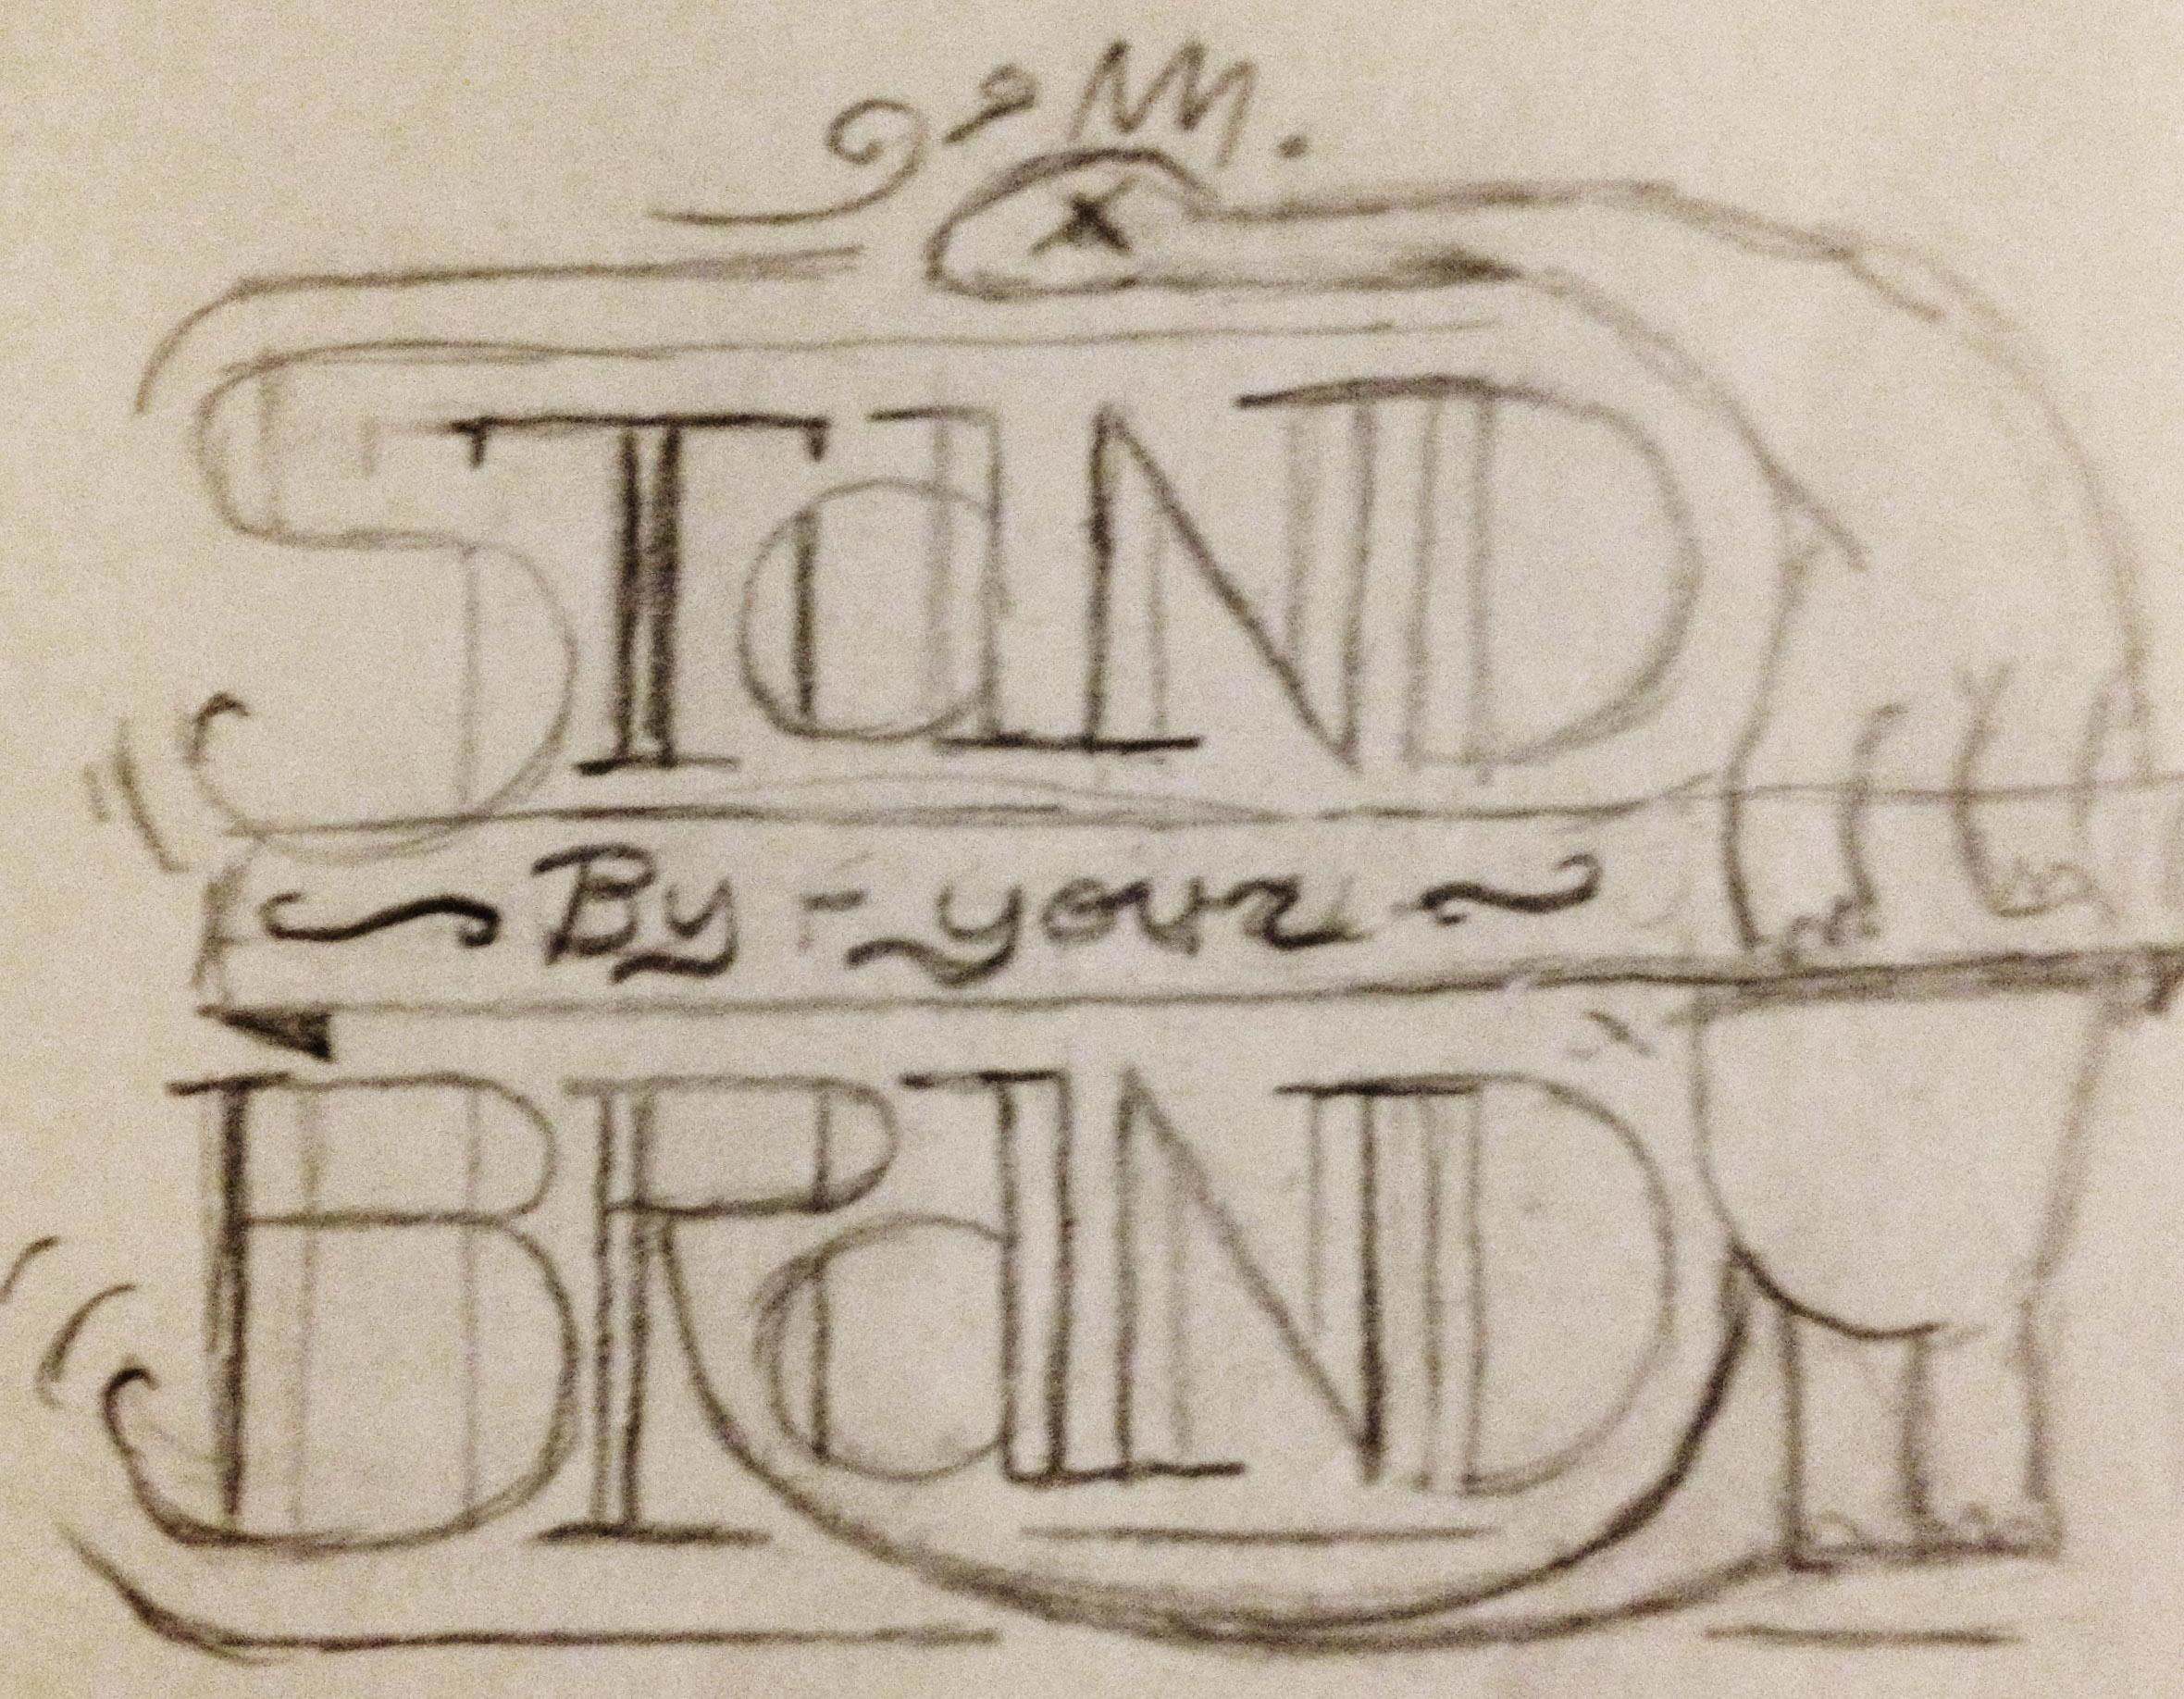 Stand By Your Brand - image 4 - student project